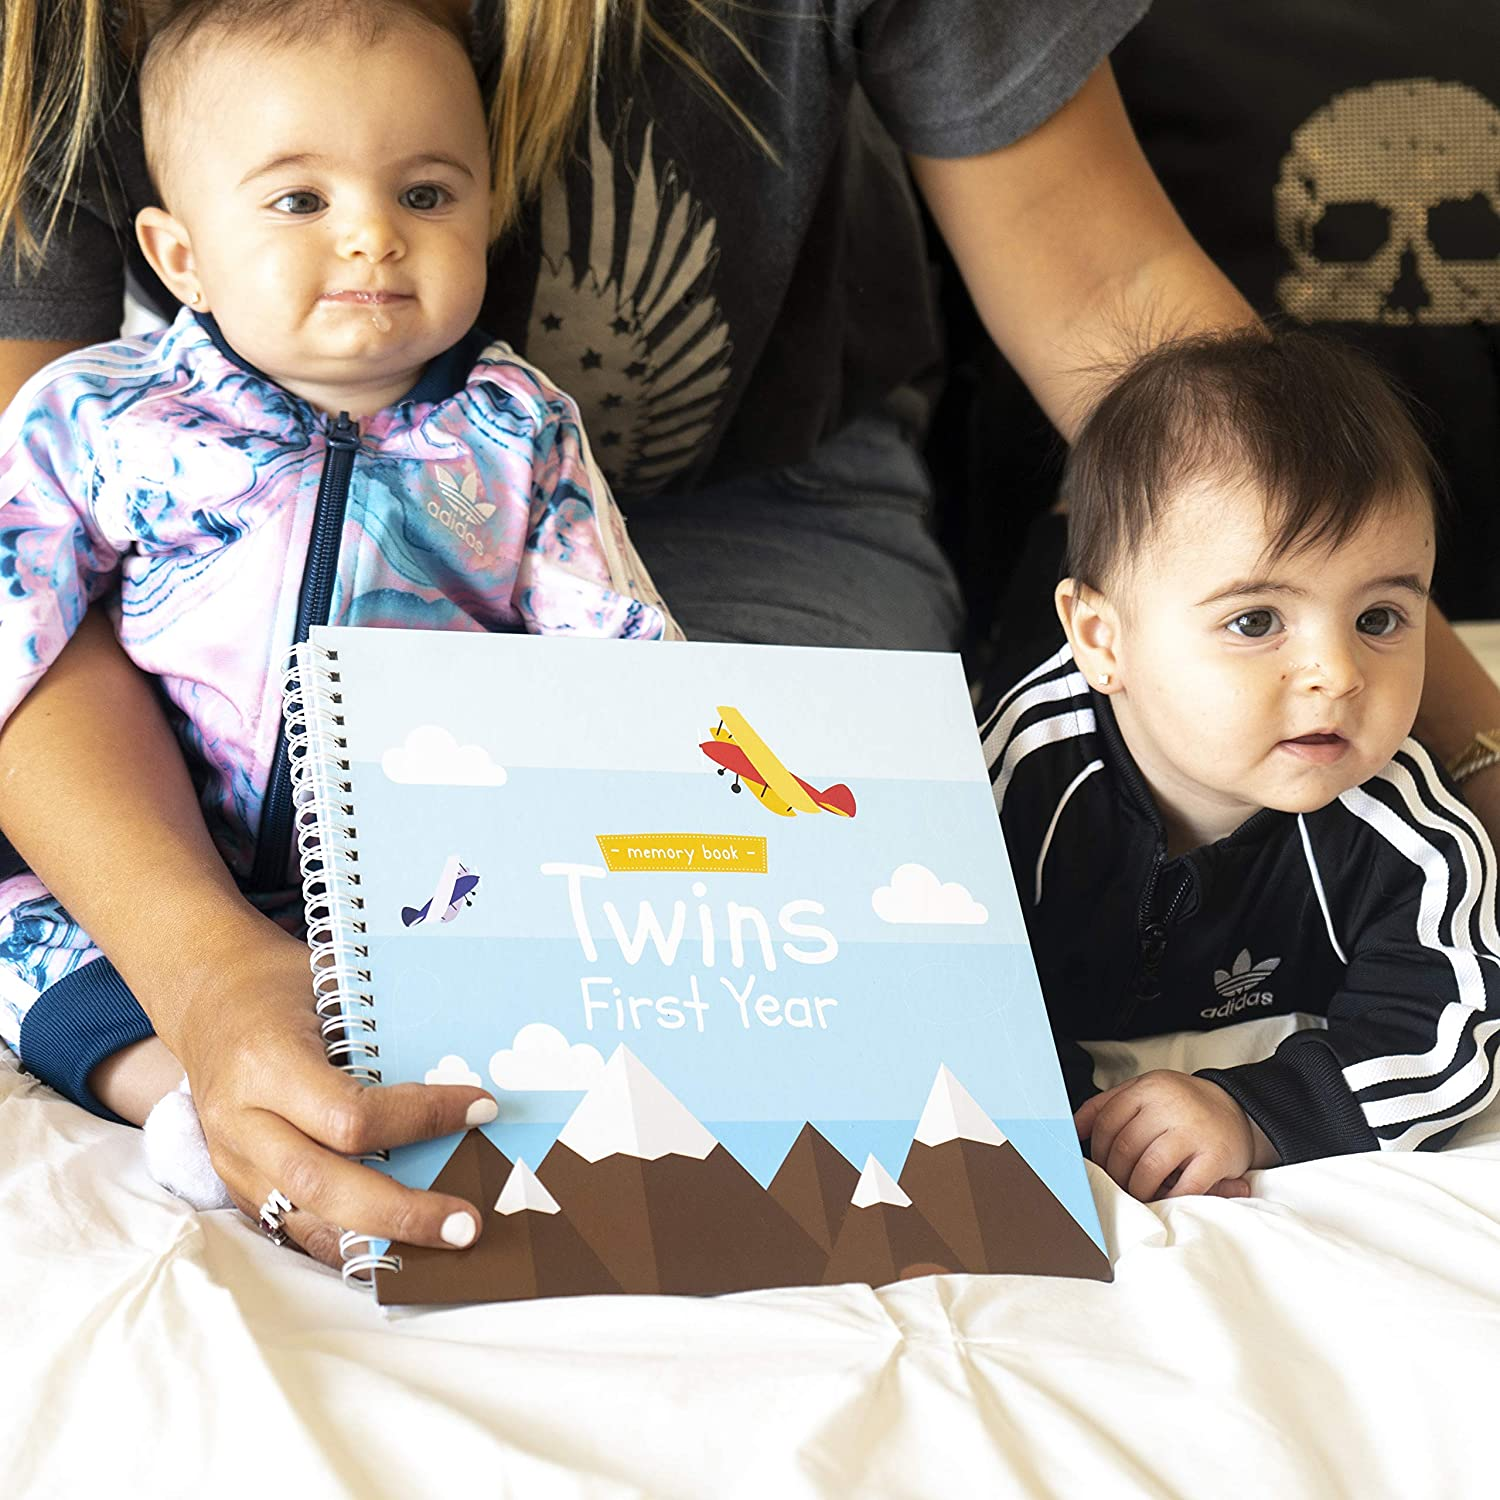 Twins First Year Hardcover Memory Book Airplanes Edition/